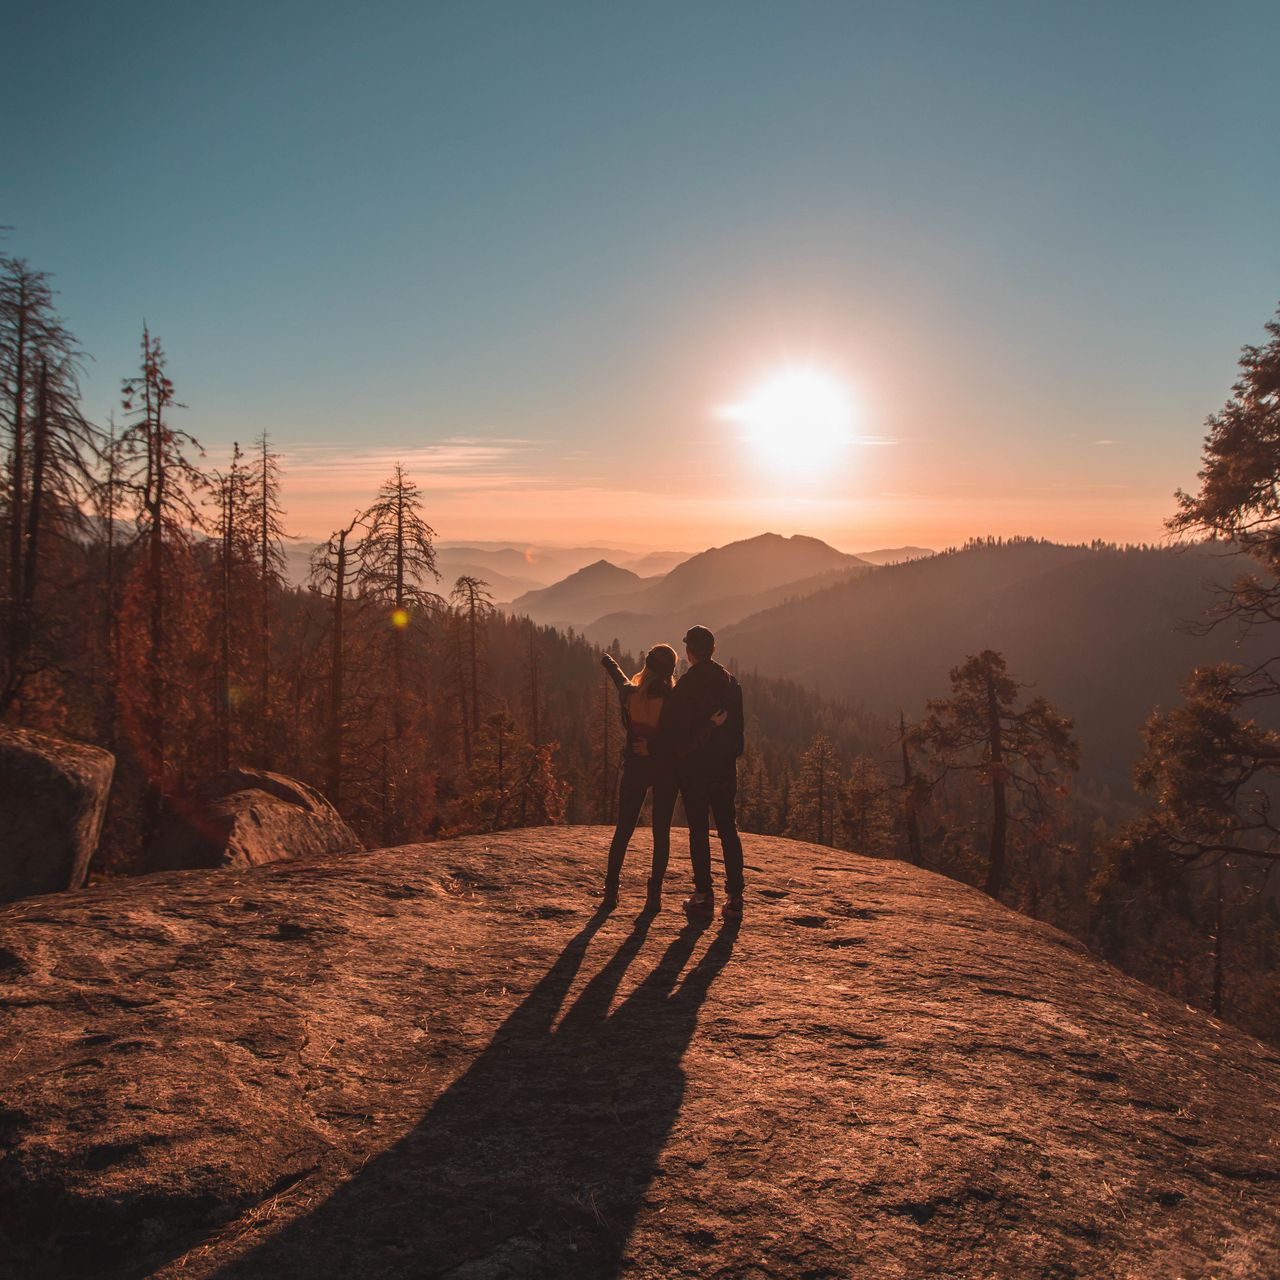 1280x1280 Wallpaper couple, mountains, travel, sunset, sequoia national park, united states